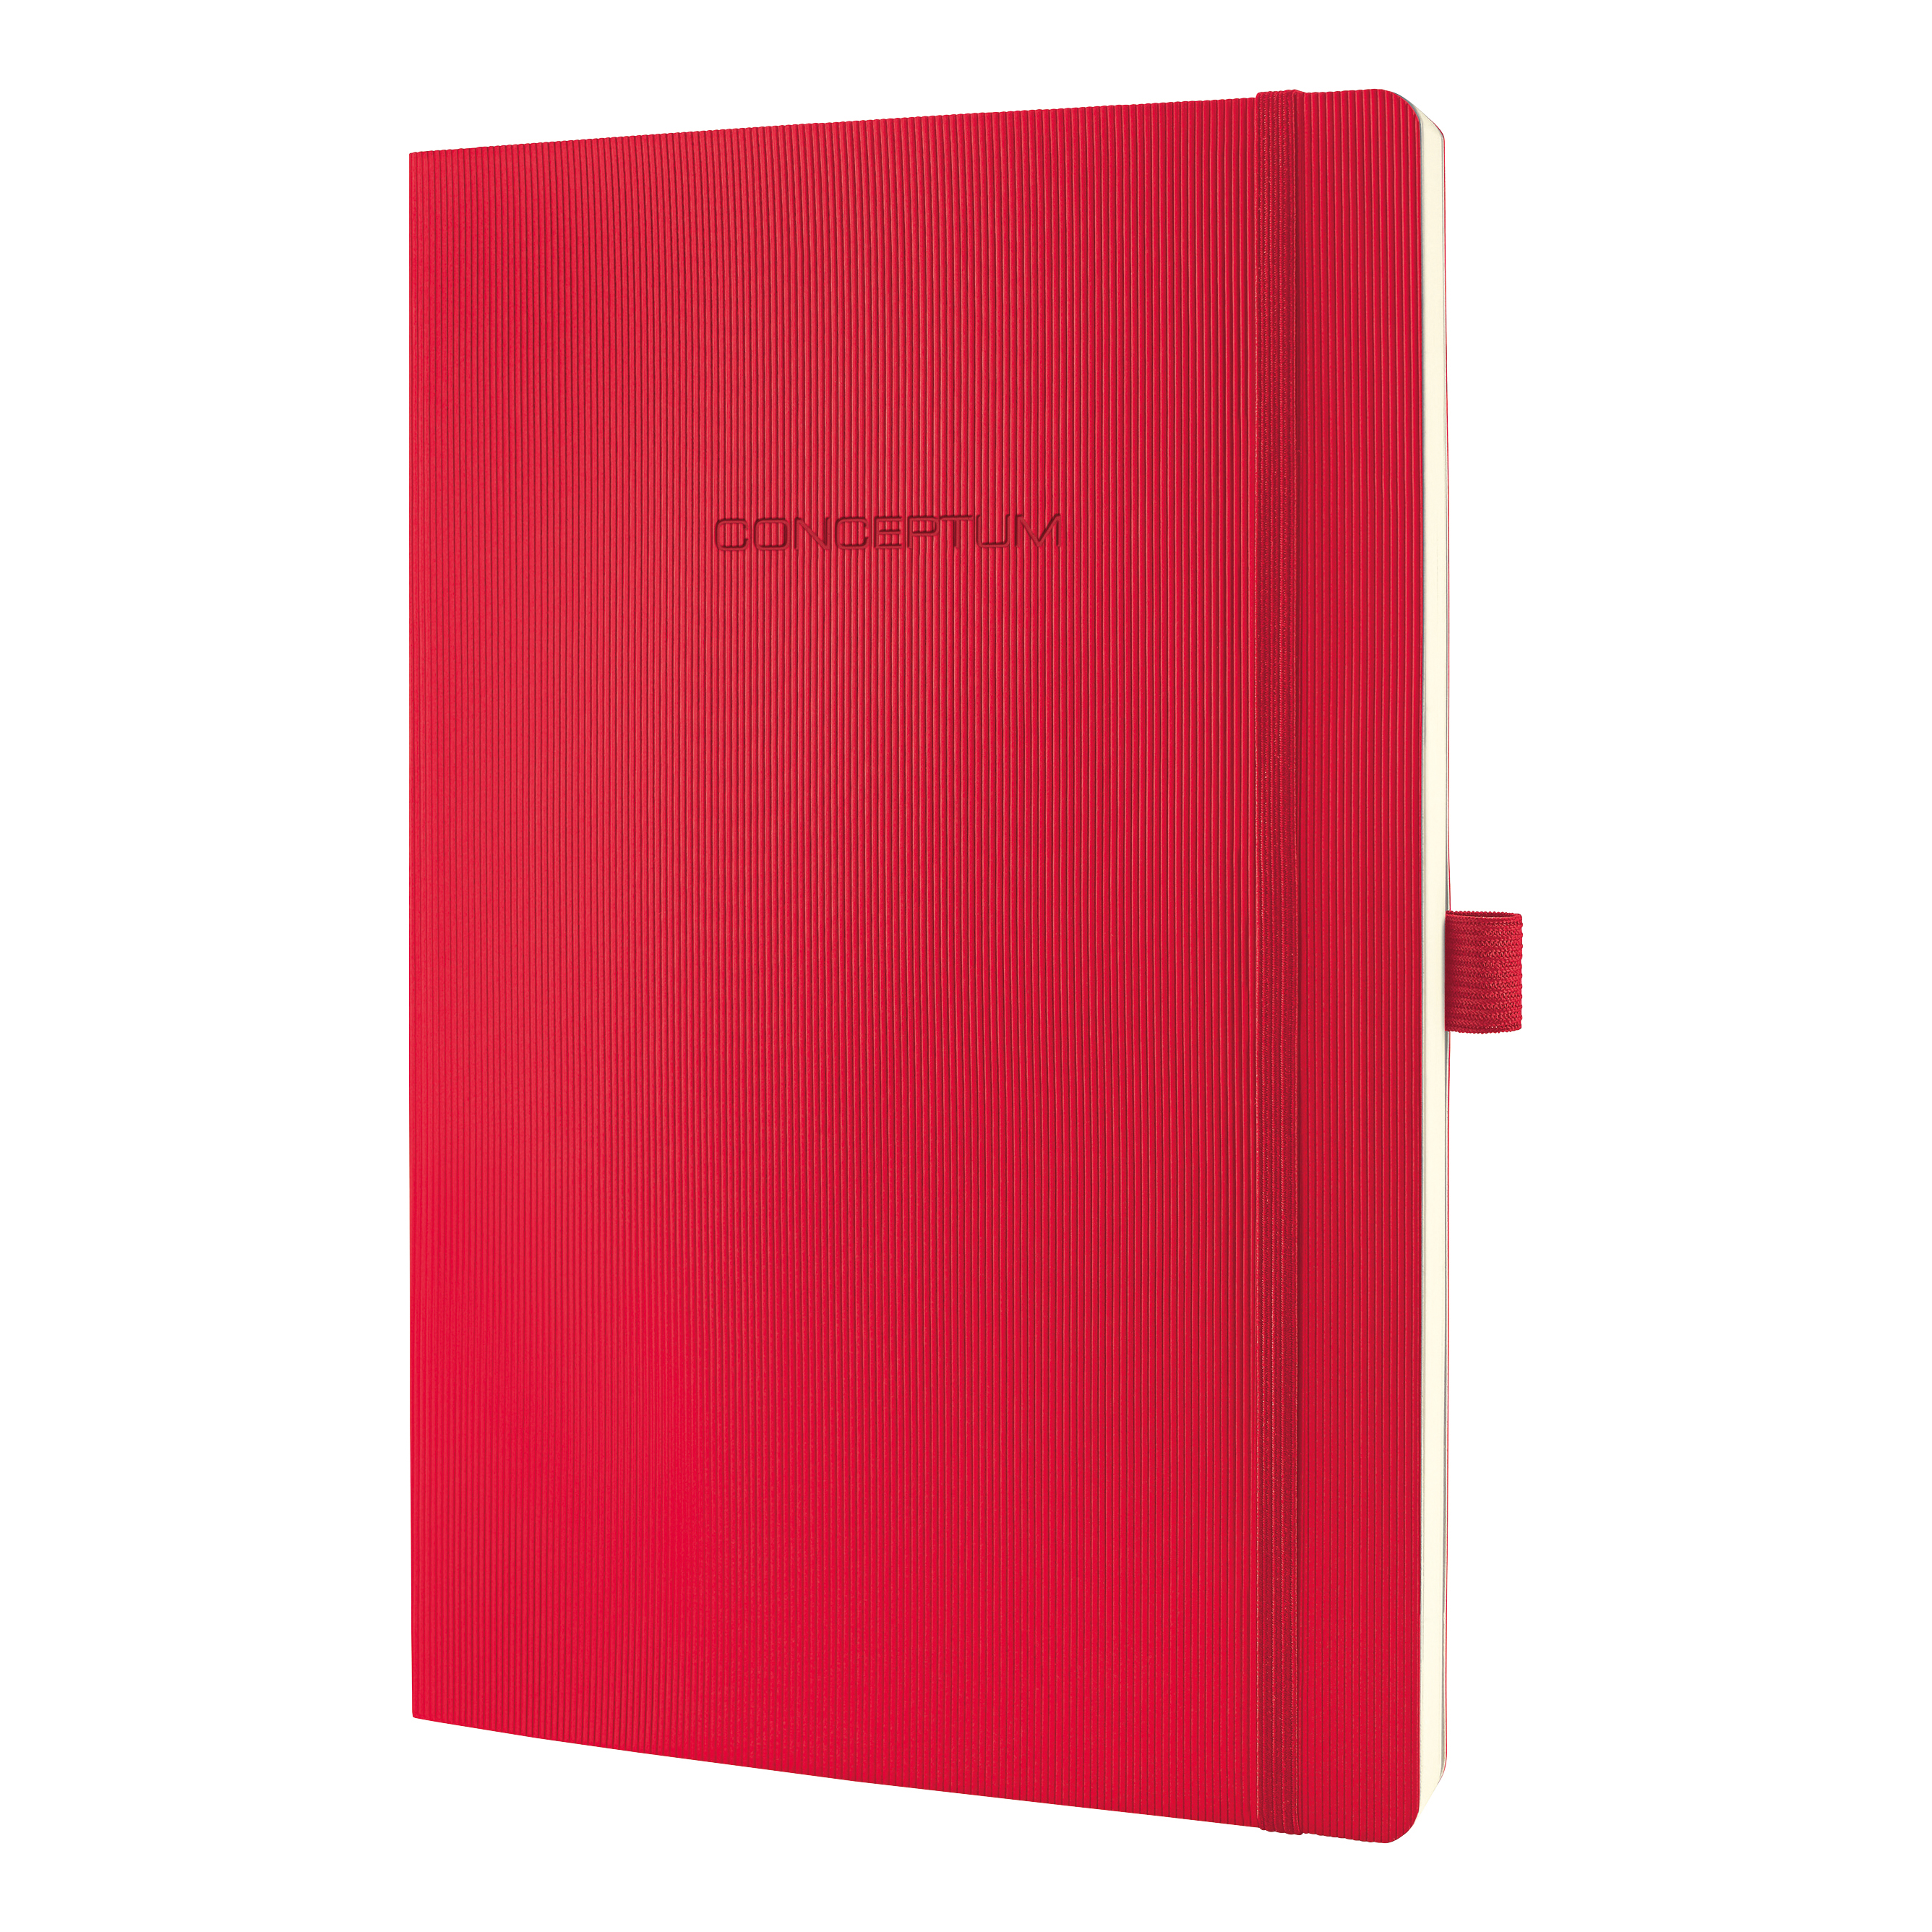 Sigel Conceptum Notebook Soft Cover 80gsm Ruled and Numbered 194pp PEFC A4 Red Ref CO315